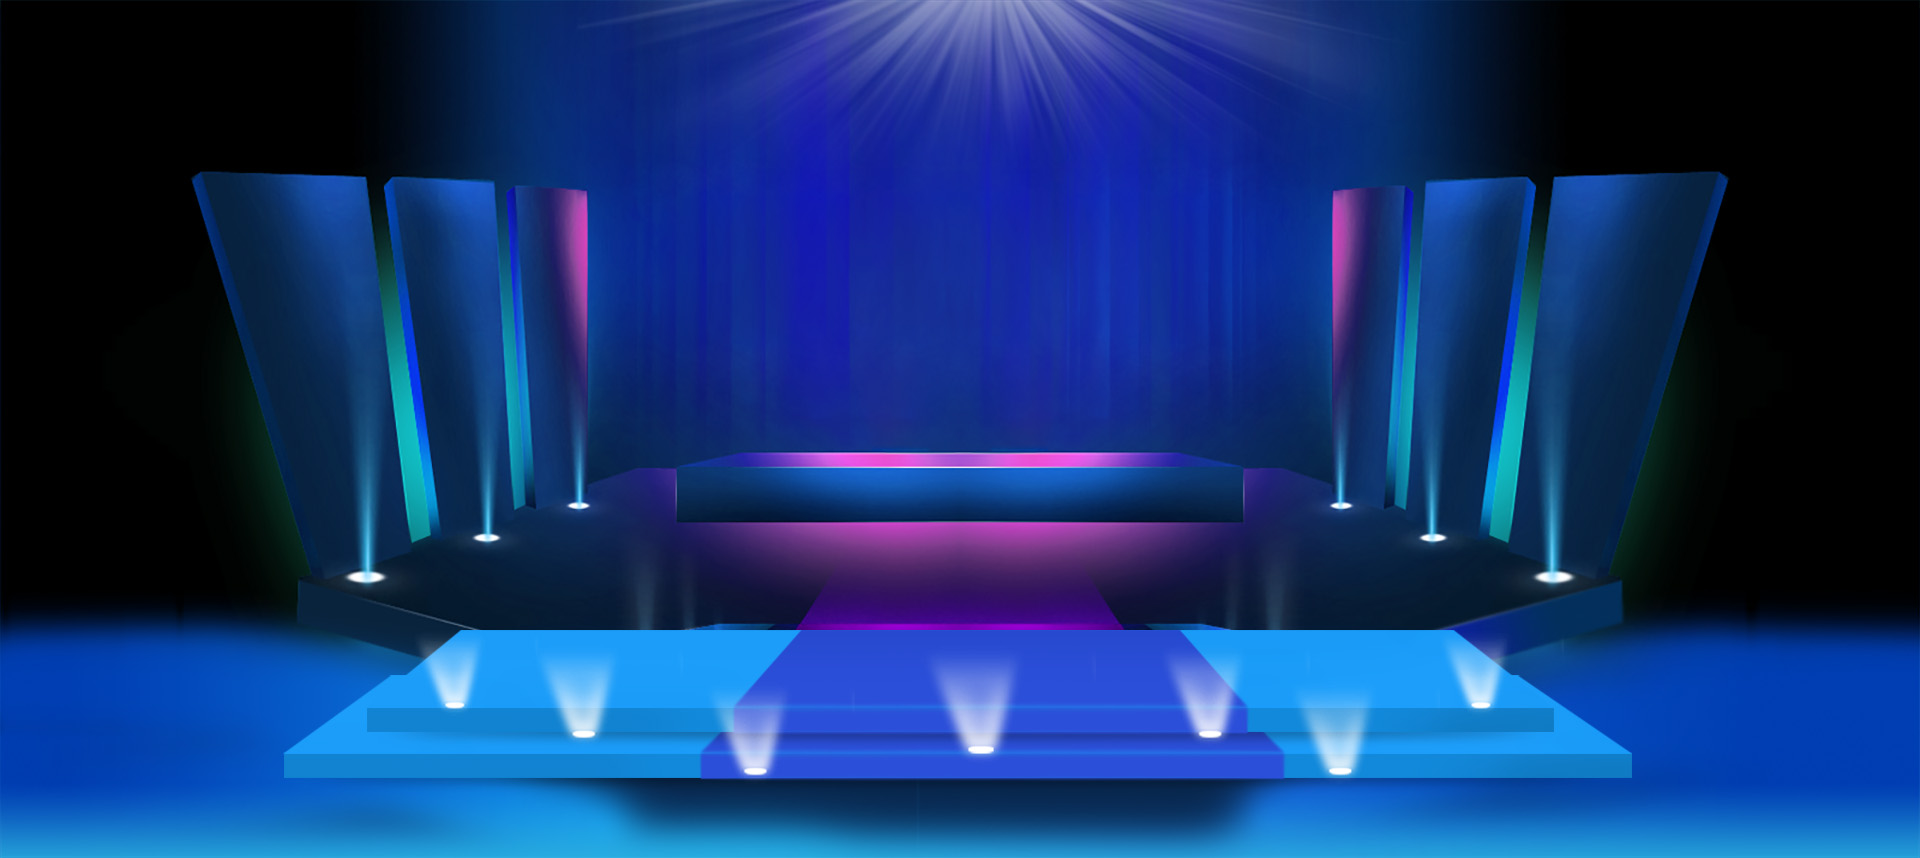 stage lighting stage background products  stage  light